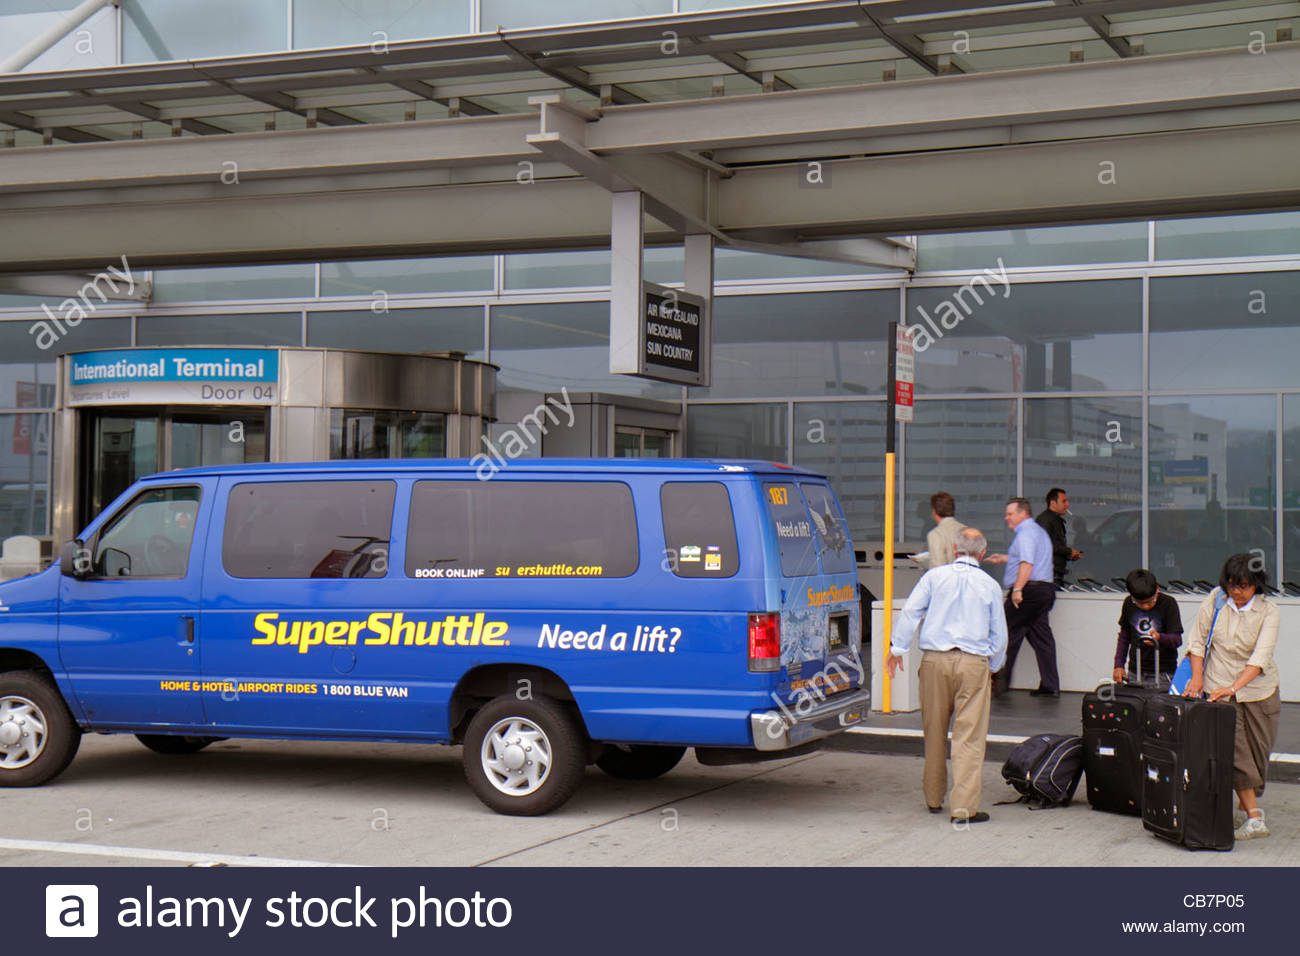 San Francisco is great for quick weekend trips or longer vacations. Reserve an airport shuttle or black car to and from SFO or around town! Use SuperShuttle to get to and from the airport and then use ExecuCar while you're in town for transportation to restaurants and attractions.